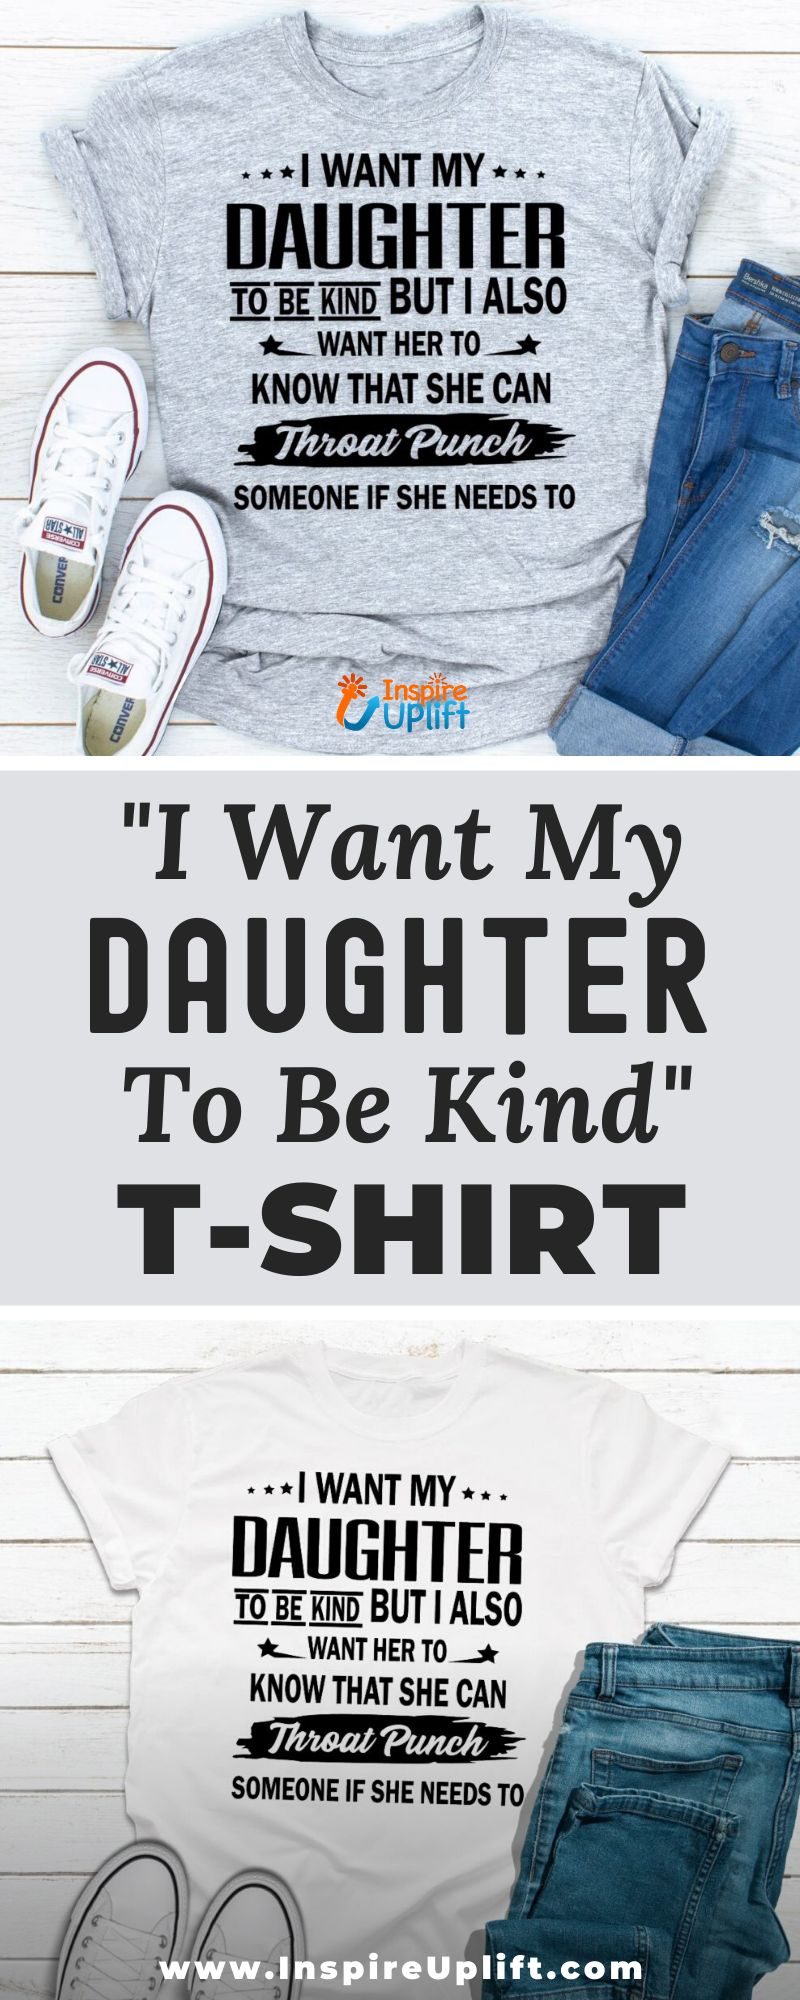 I Want My Daughter To Be Kind T-Shirt 😍 InspireUplift.com